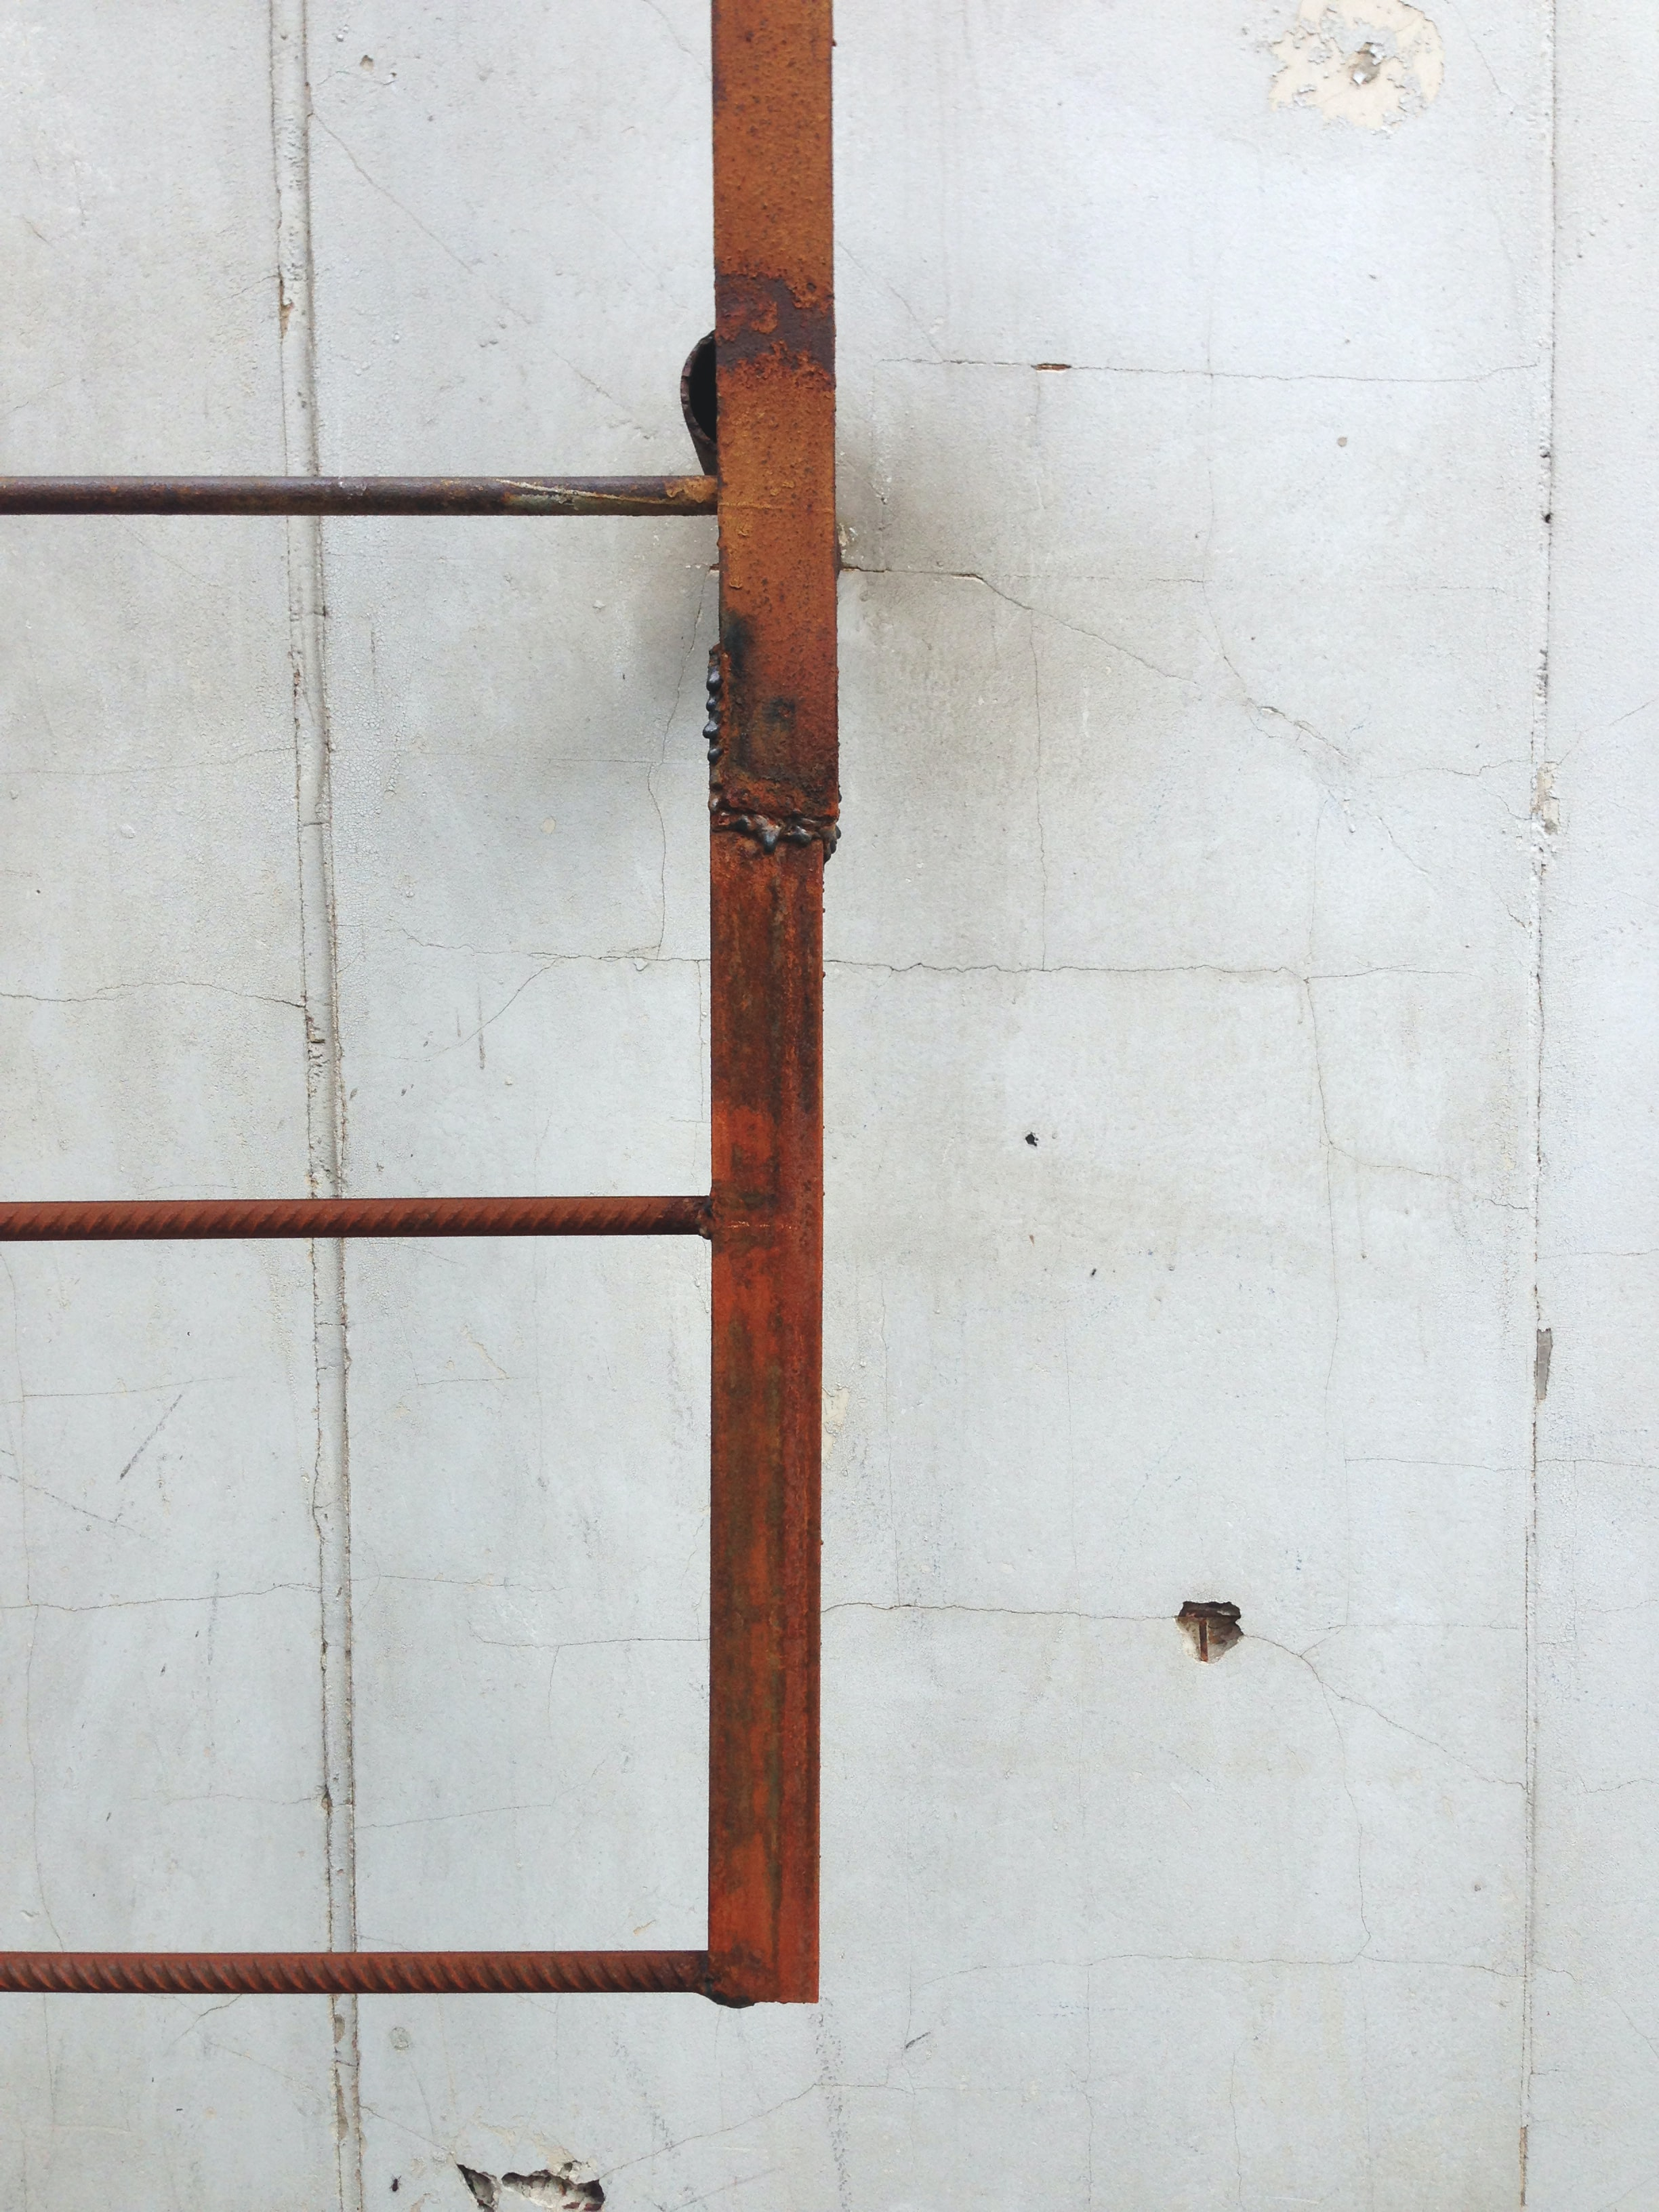 brown metal ladder on wall